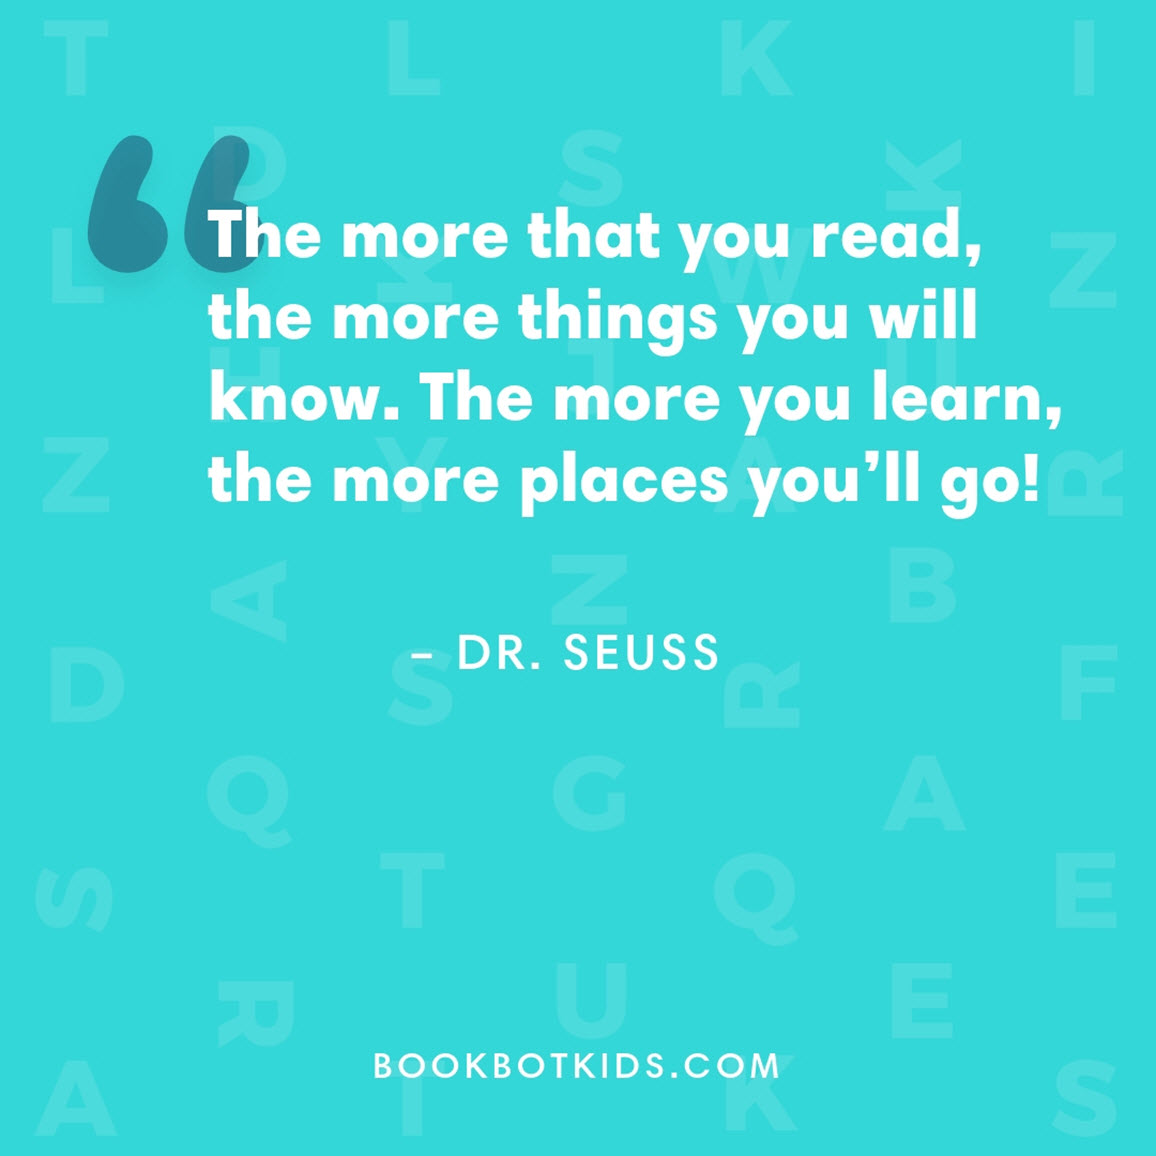 The more that you read, the more things you will know. The more you learn, the more places you'll go! – Dr. Seuss